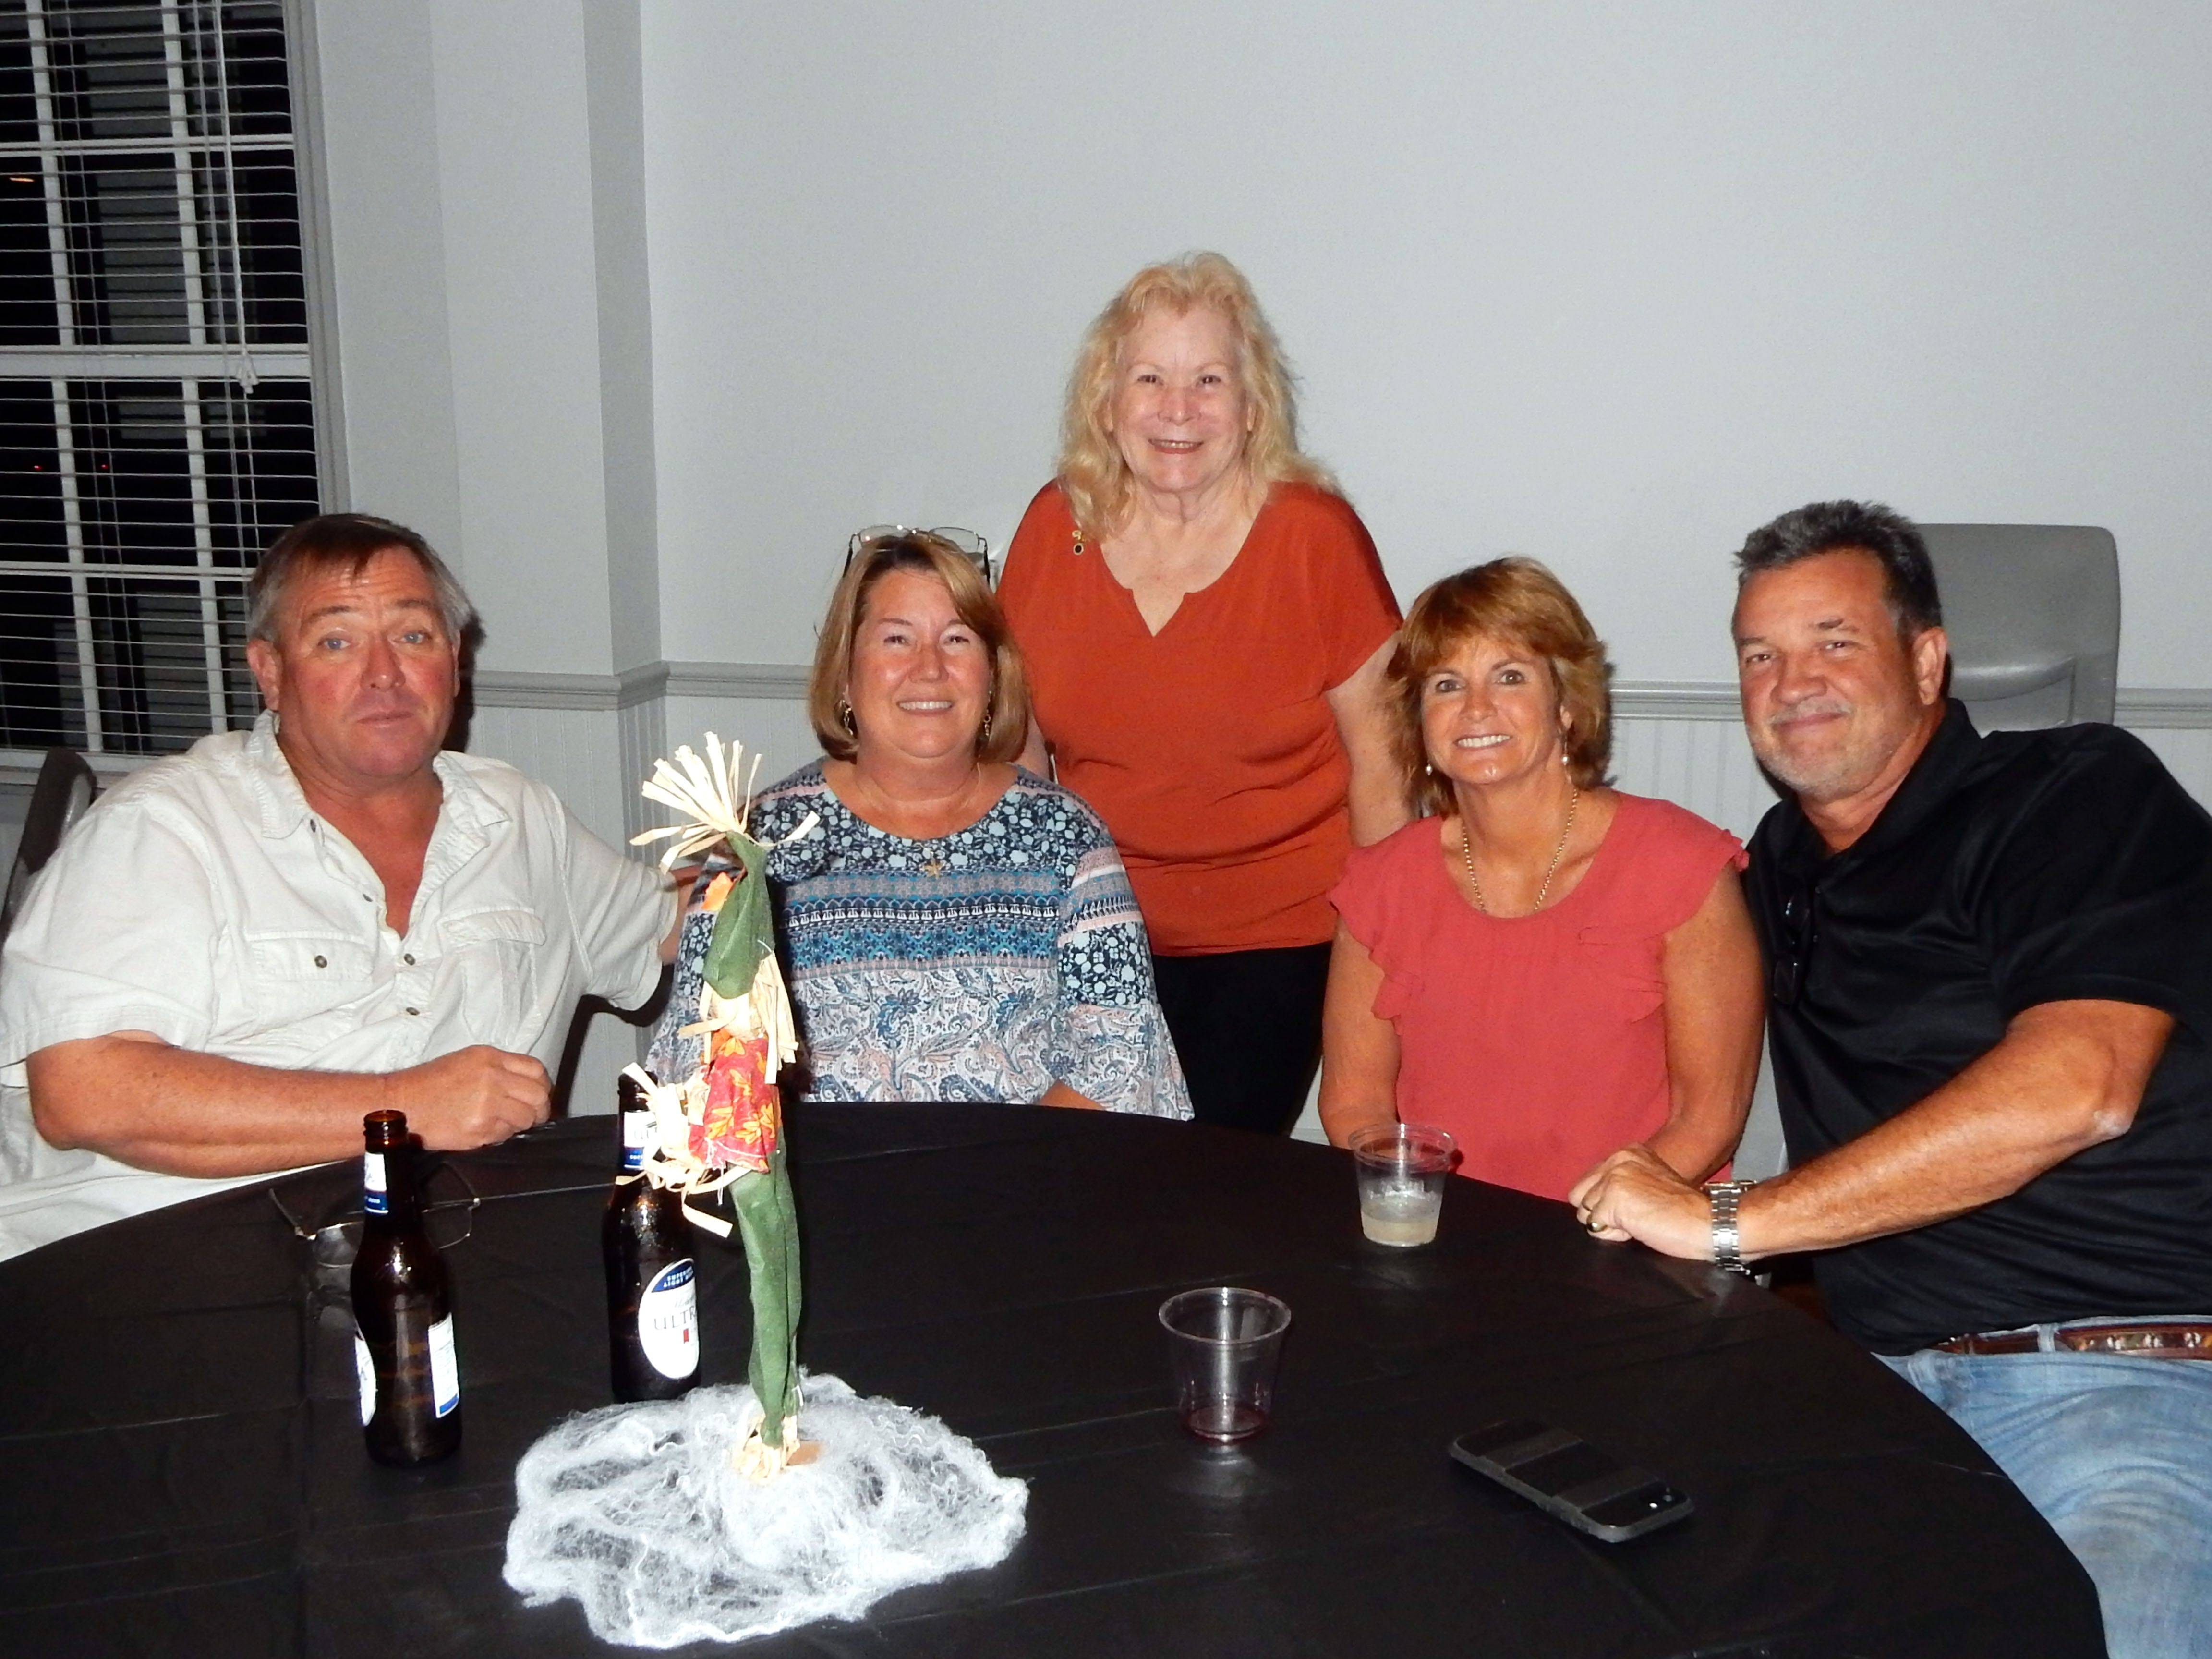 Lesa Darnell, left, Steve Darnell, Judy Landgrave, Robert Taylor and Mary Taylor at the Exchange Clubs Halloween Party.